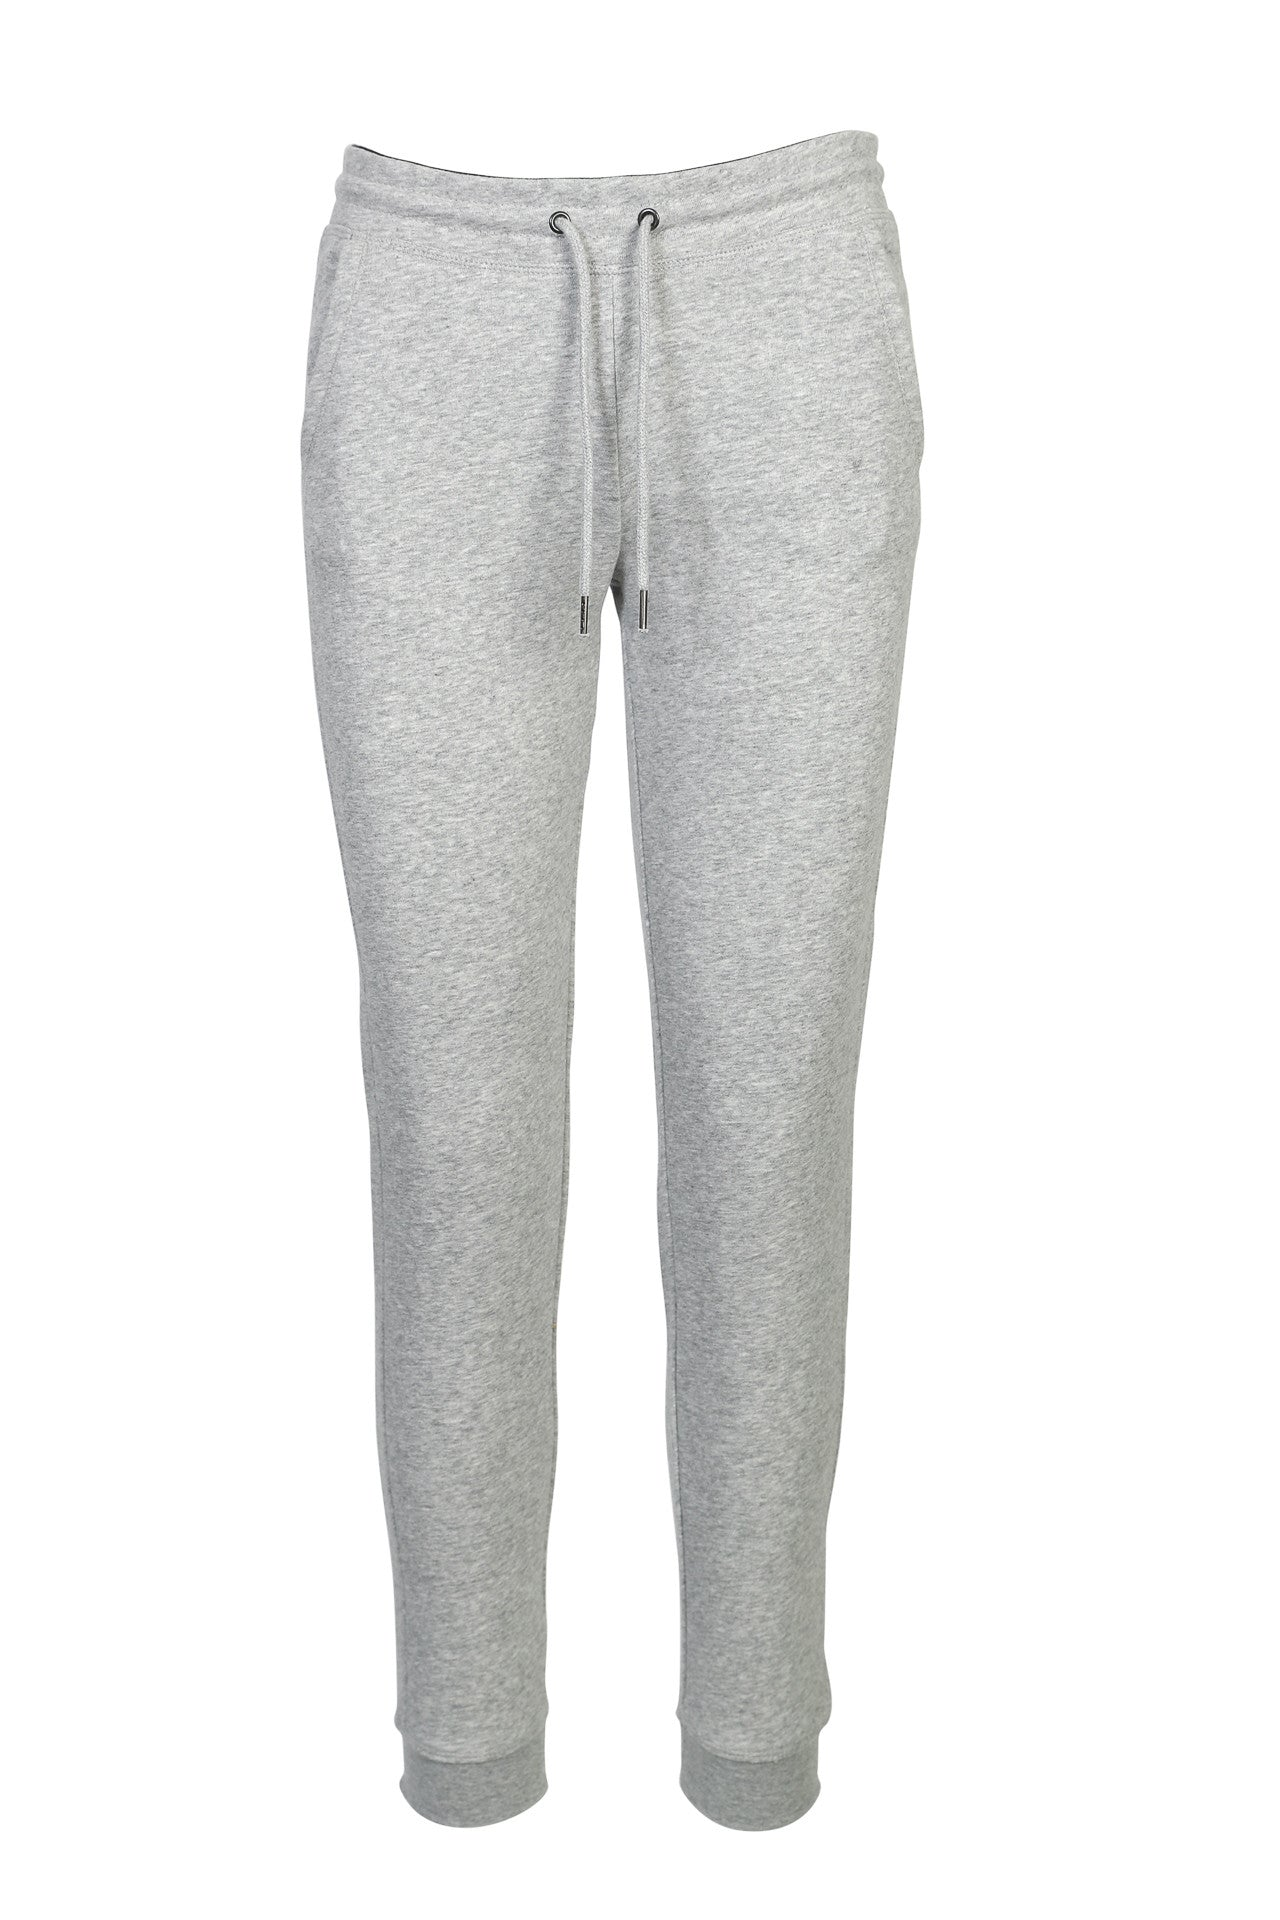 Jogging Pants women